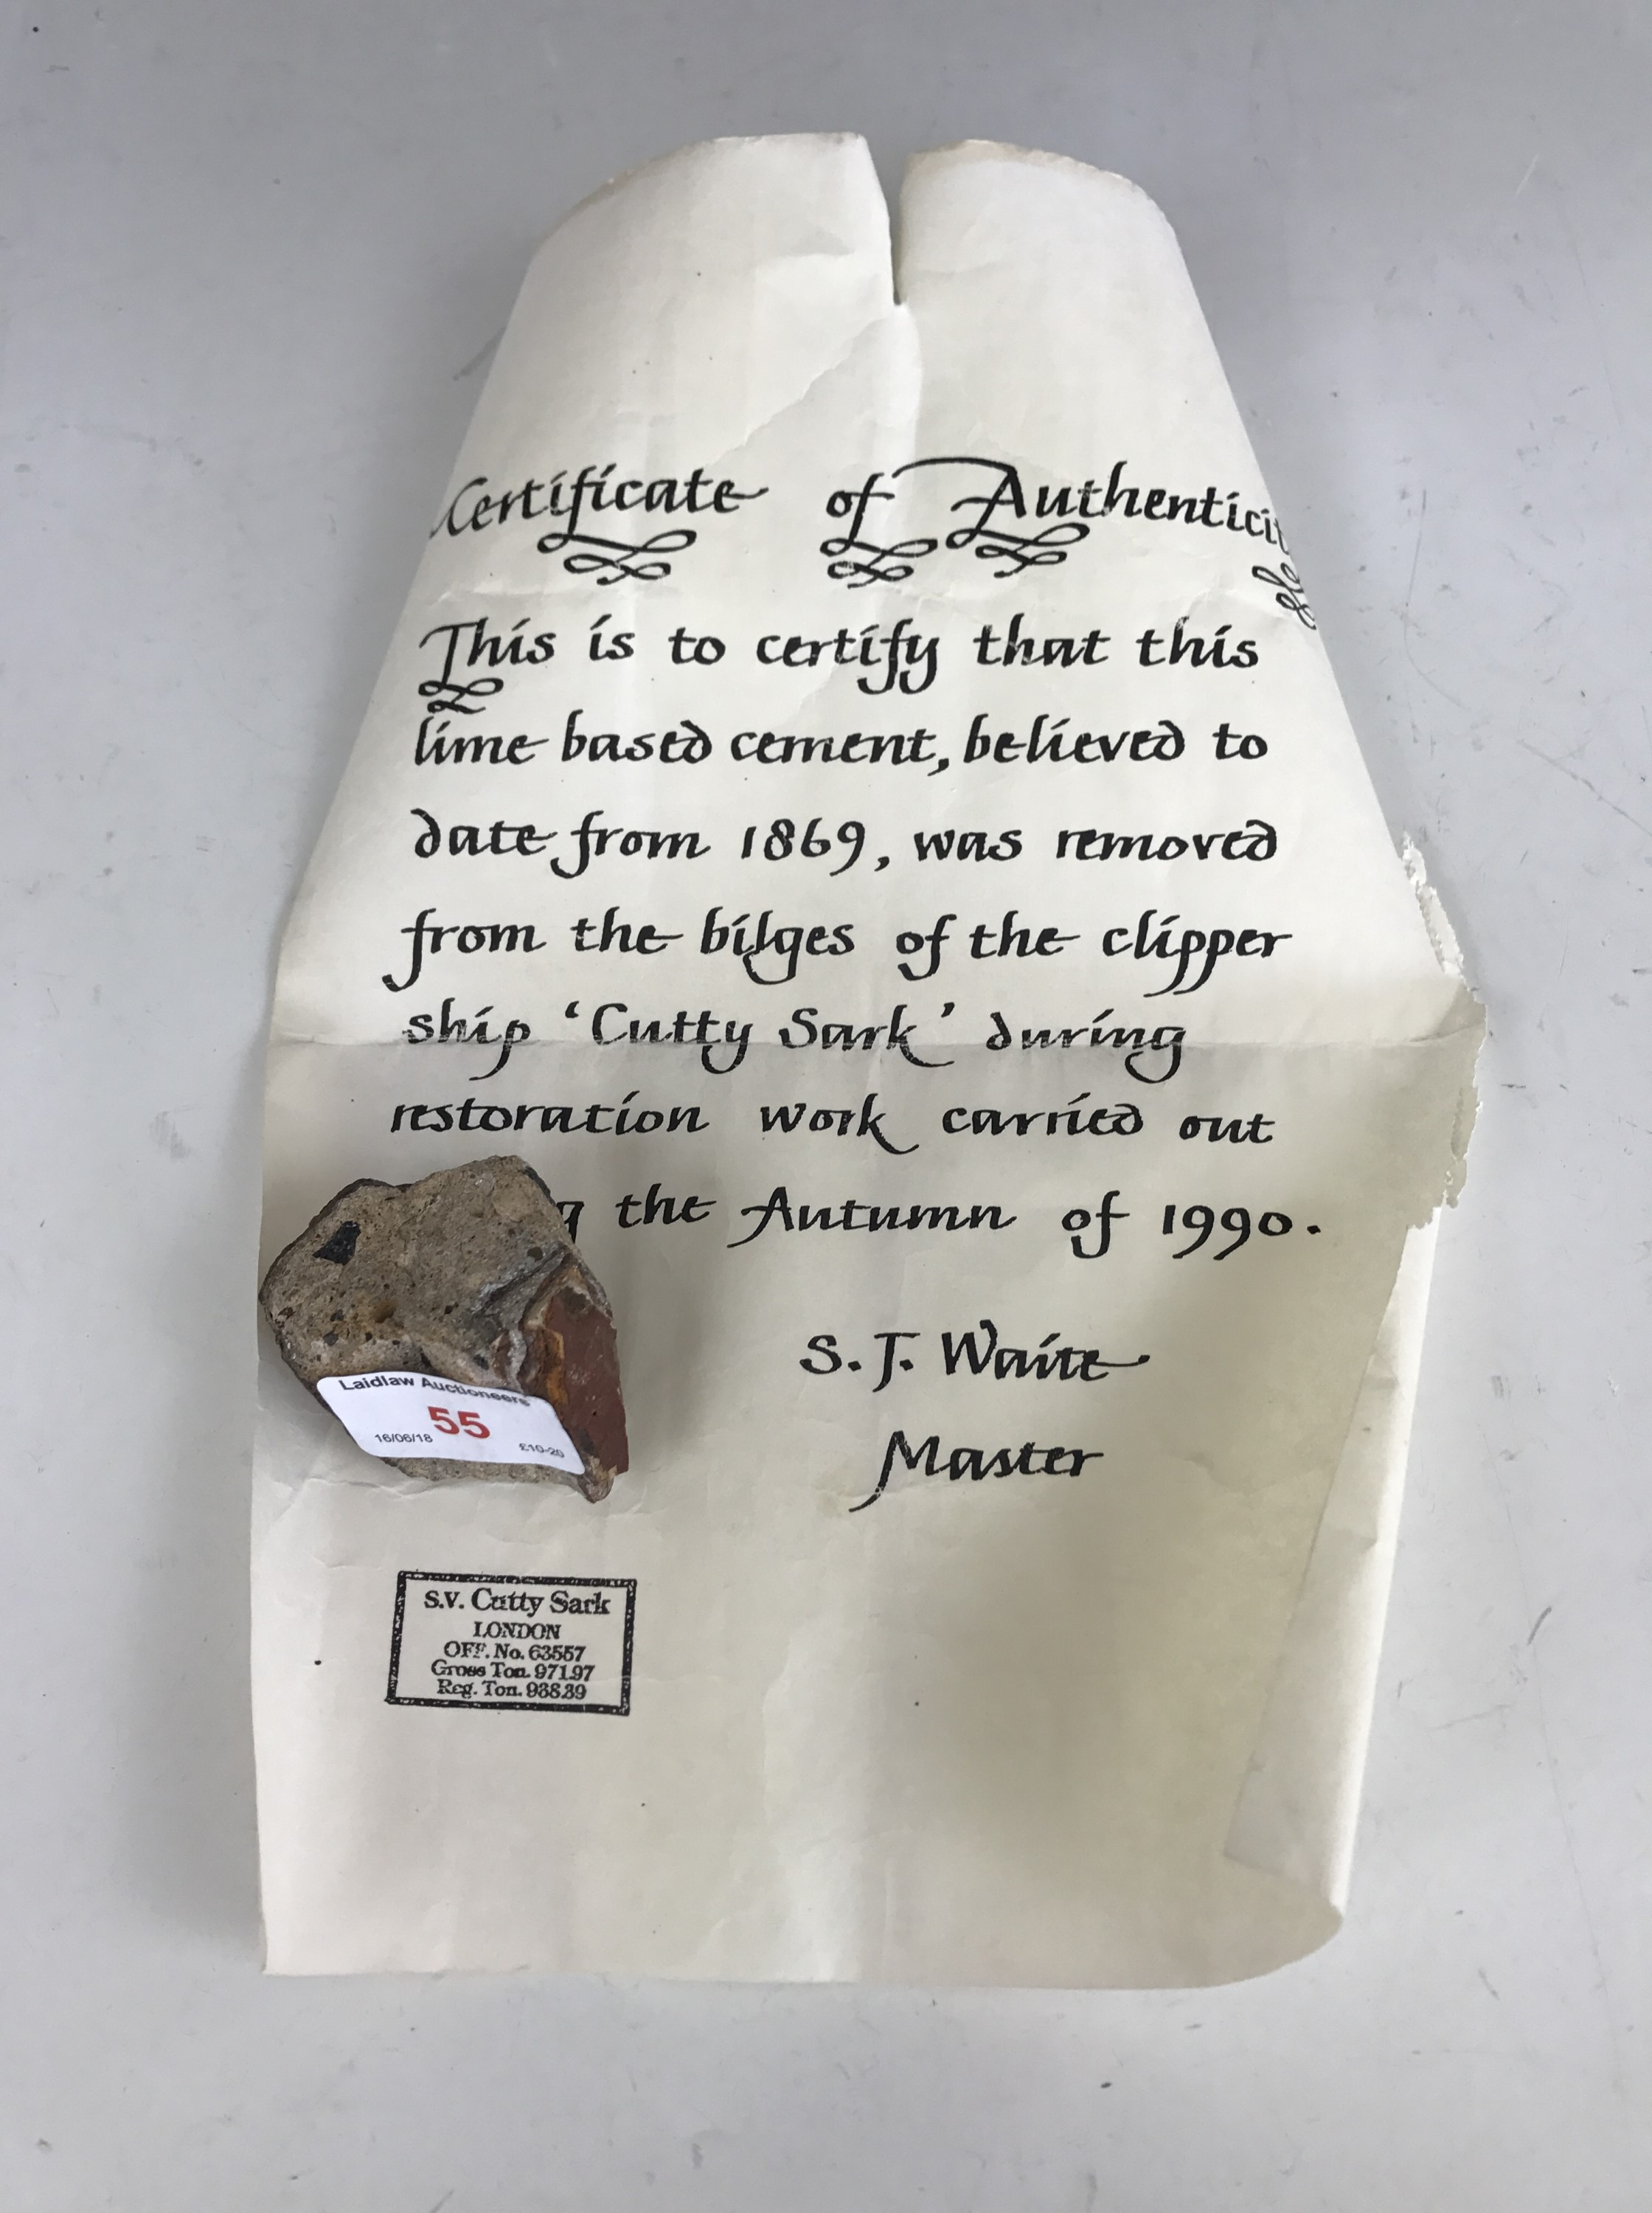 Lot 55 - A fragment of ballast from the clipper ship Cutty Sark, recovered during 1990 restoration, with